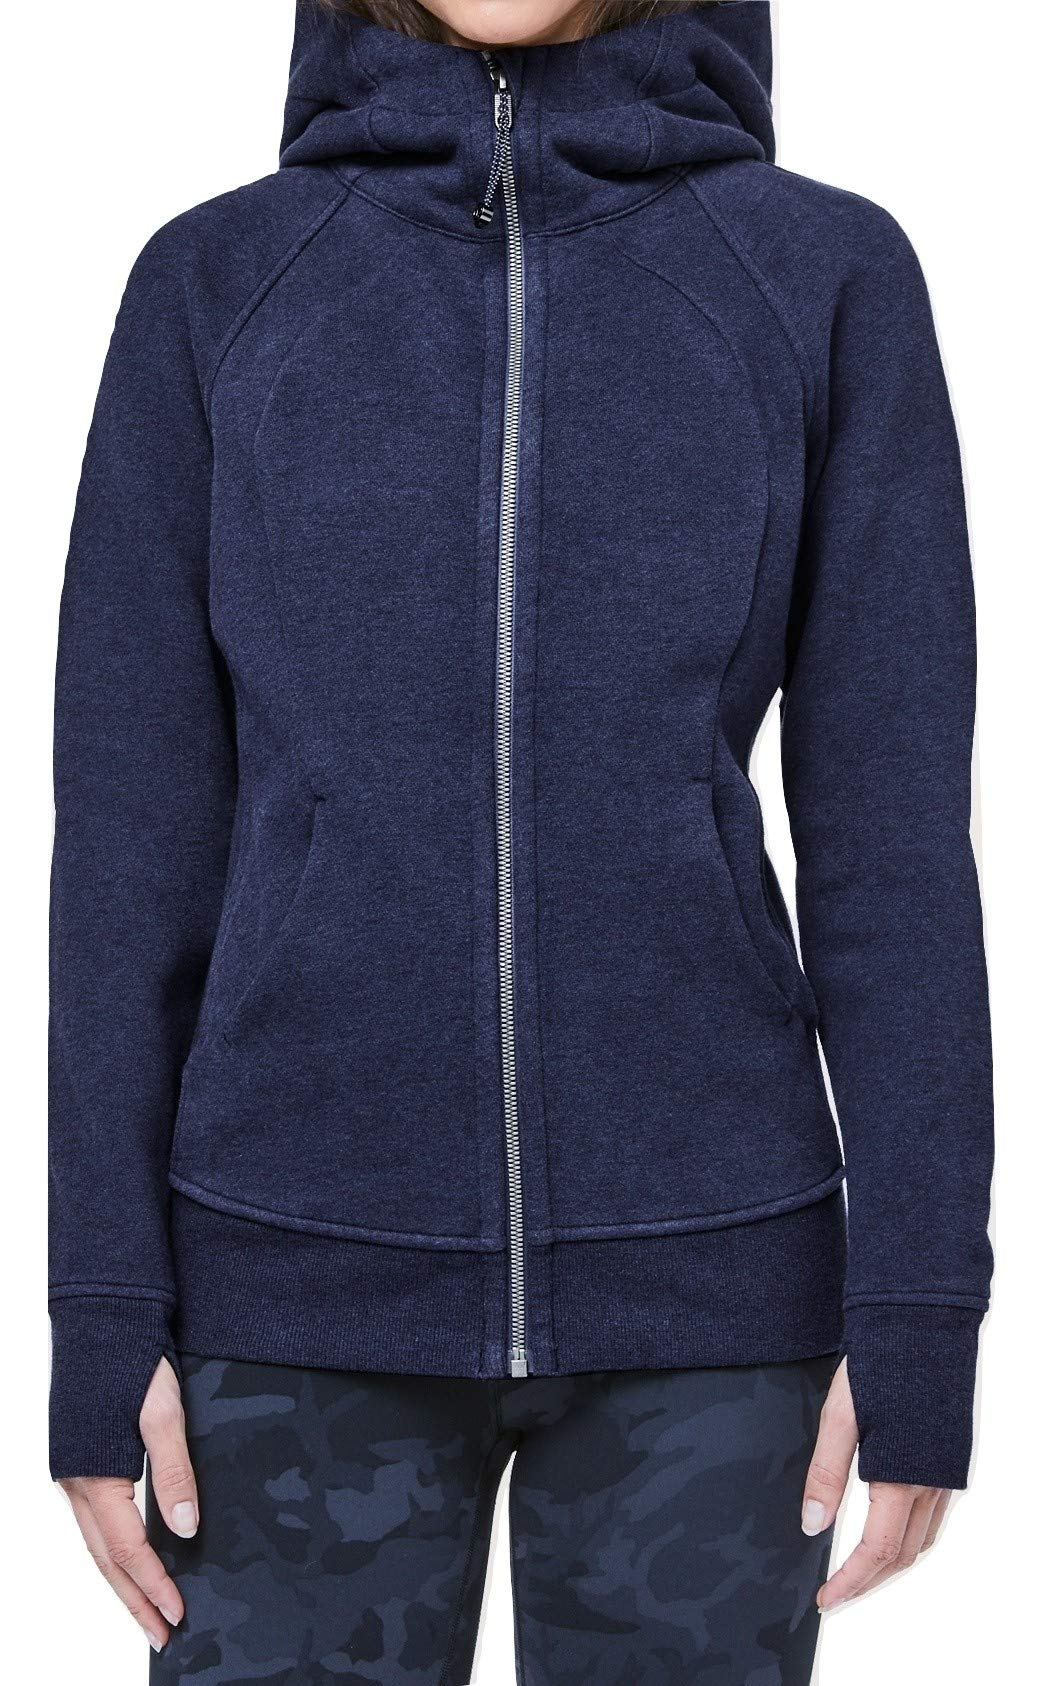 Lululemon Scuba Hoodie (Heathered Hero Blue, 2)